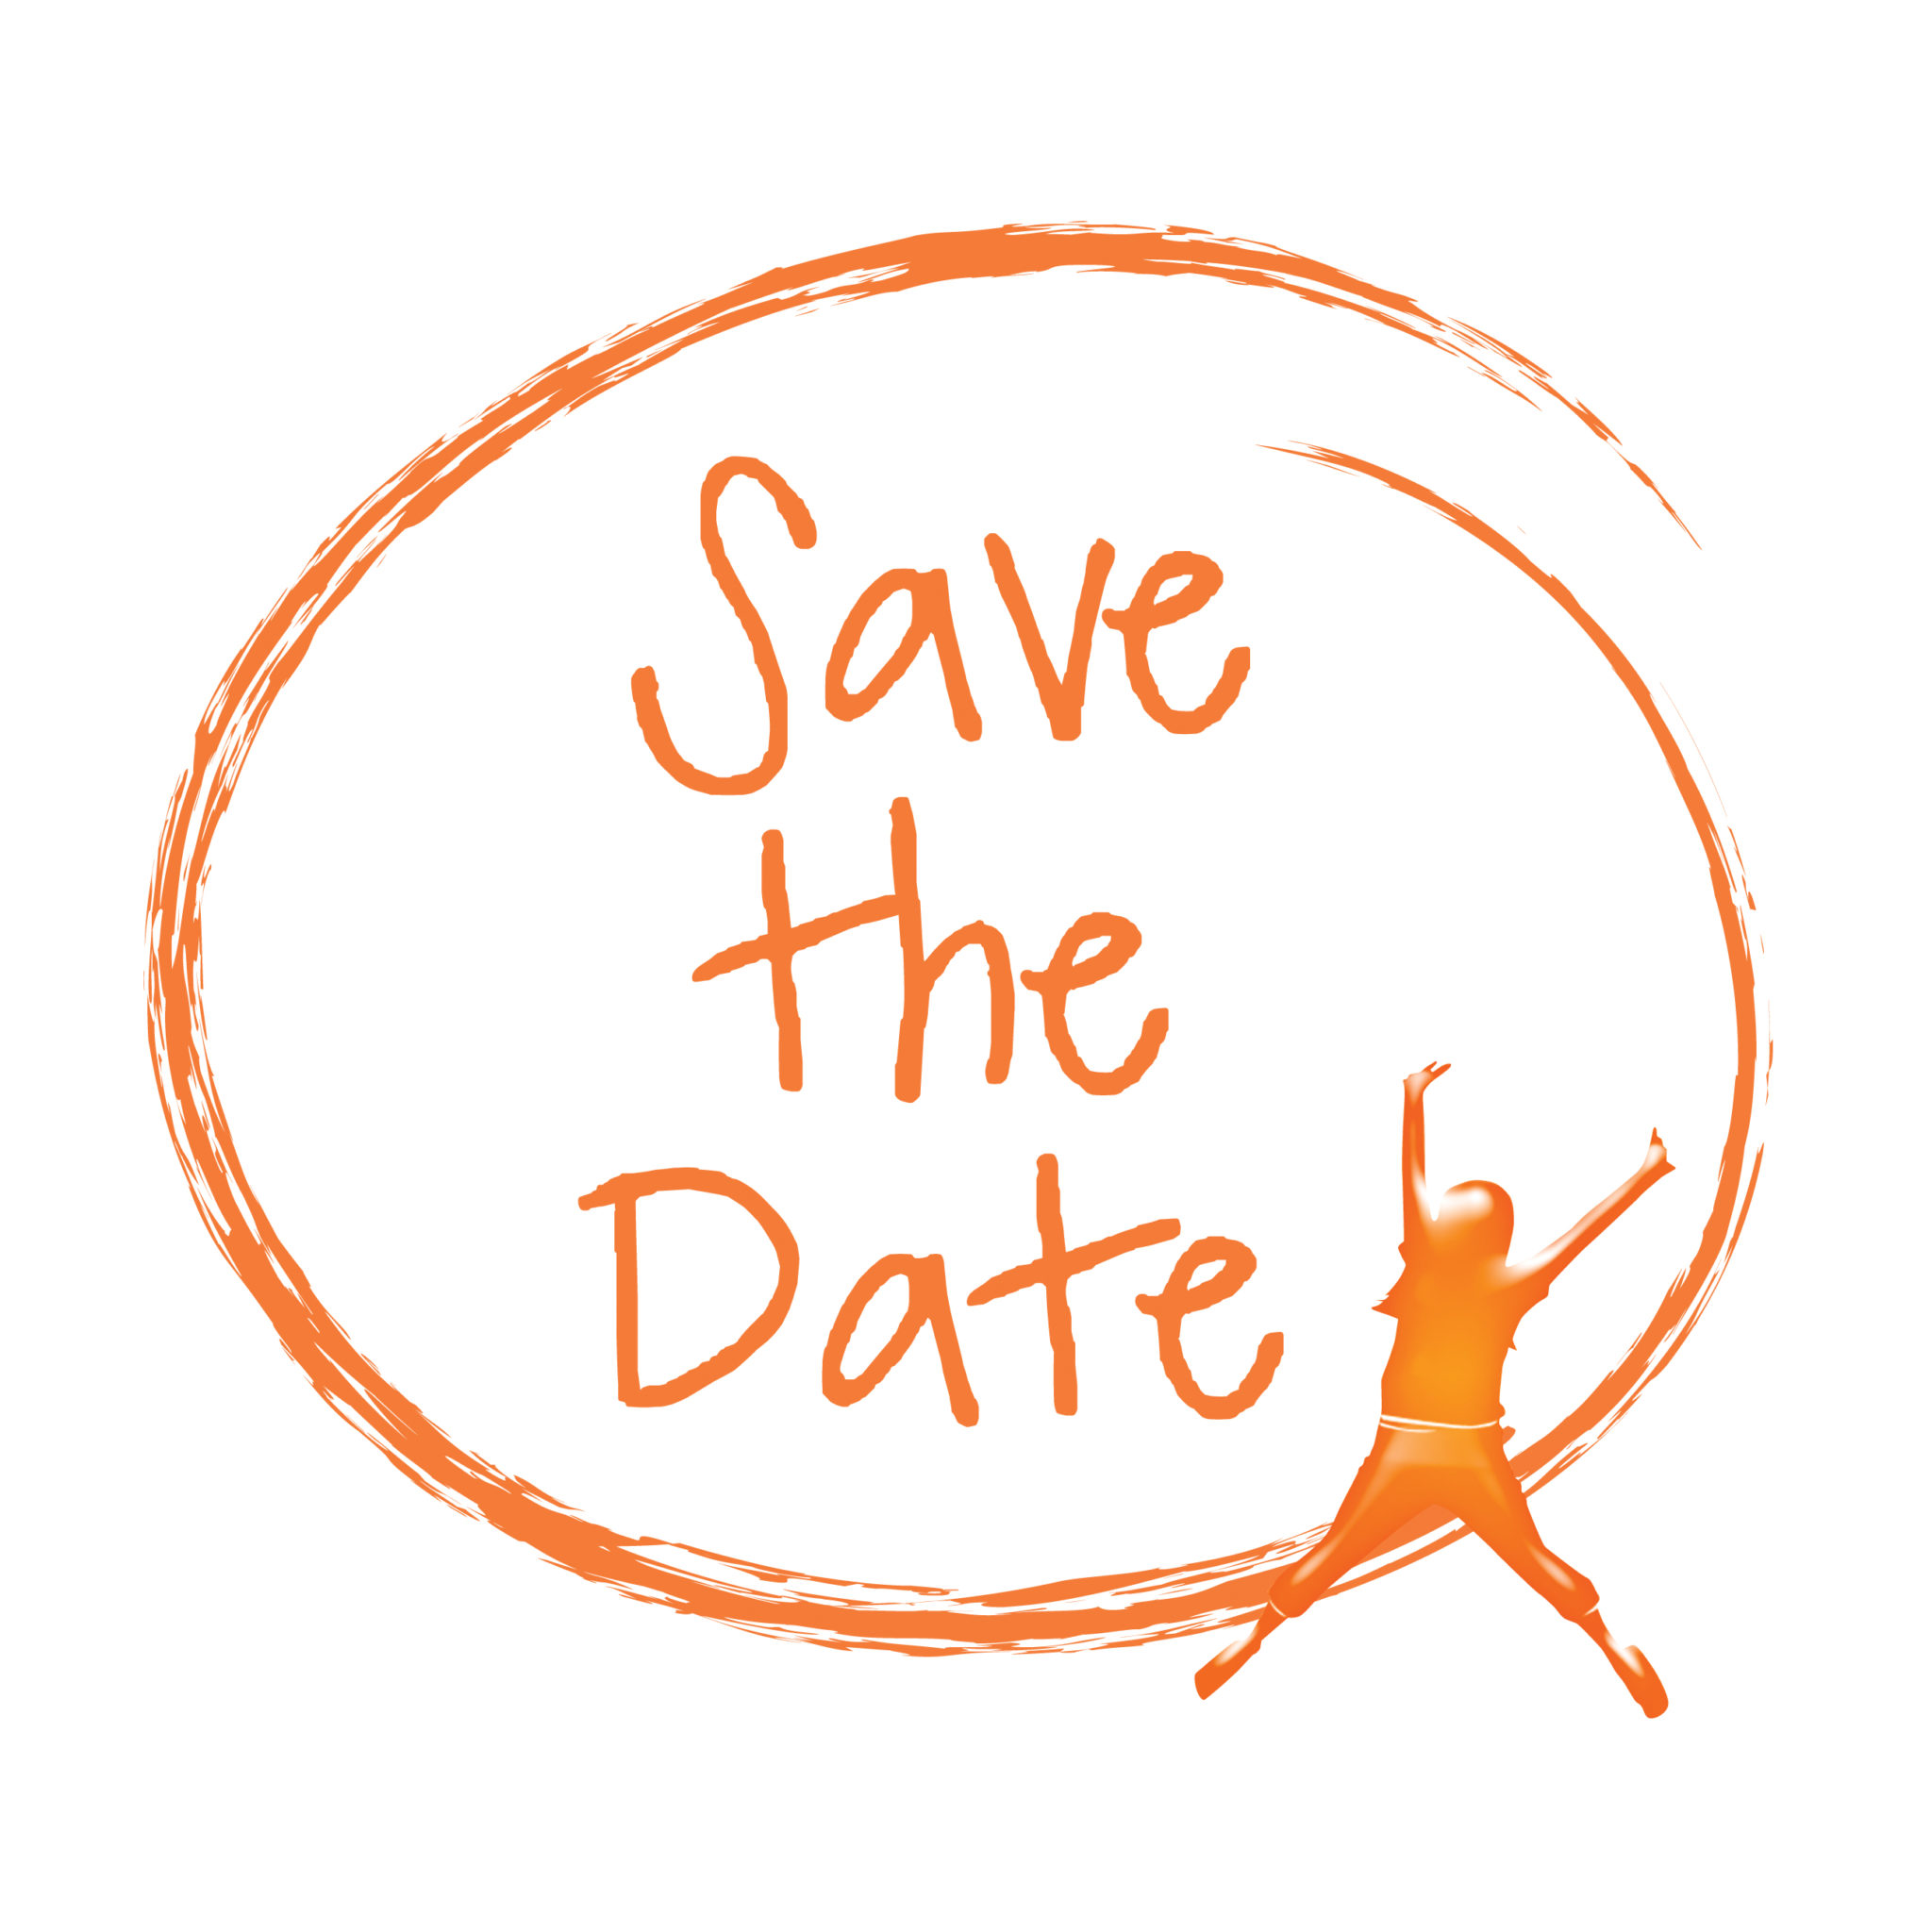 Save the Date 27 July!